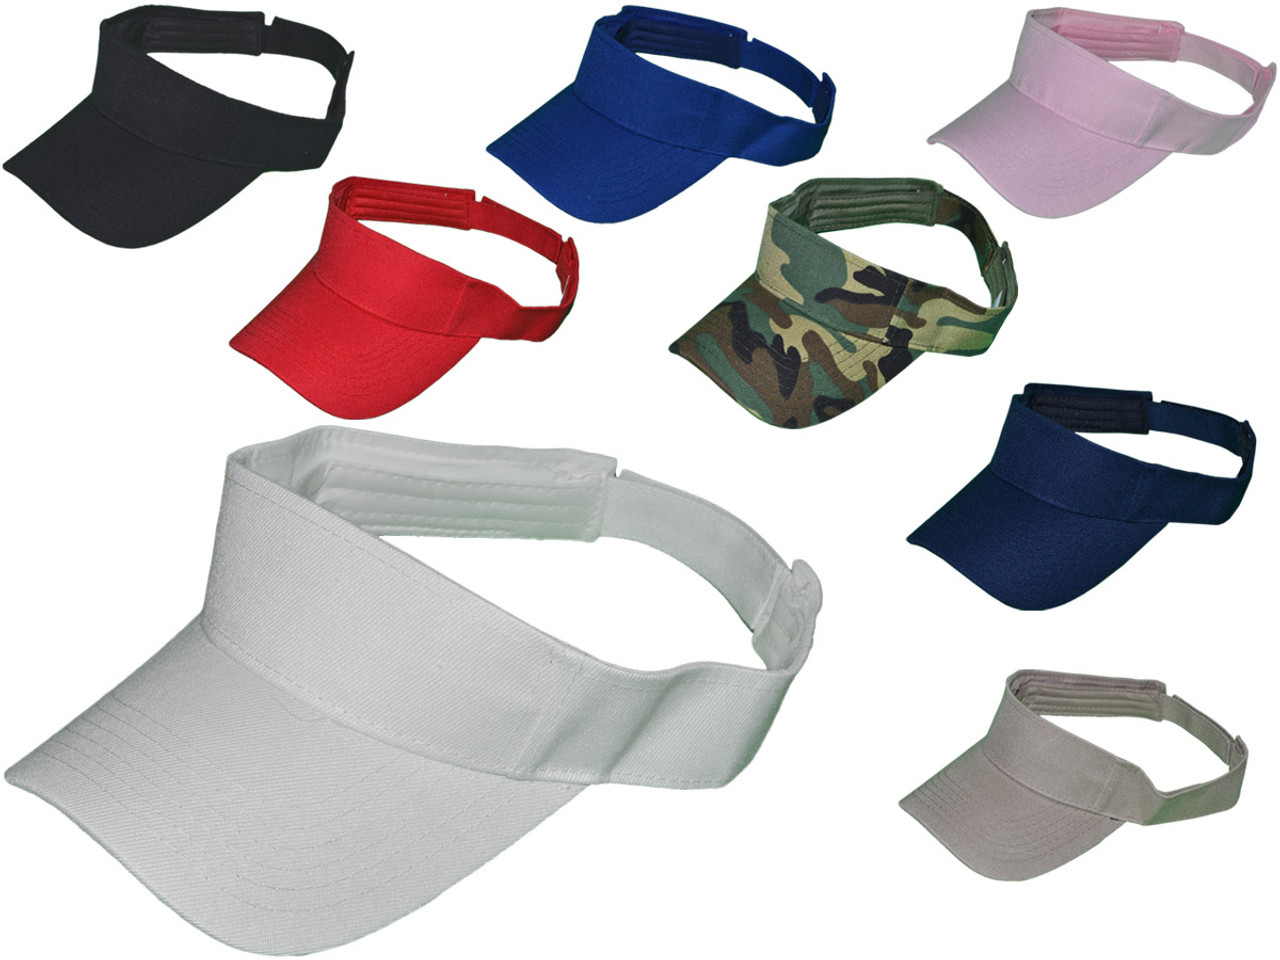 Wholesale Cotton Blank Sun Visors Hats (White)Blank Sun Visor Hats BK Caps  (8 colors available) fed92ea077f